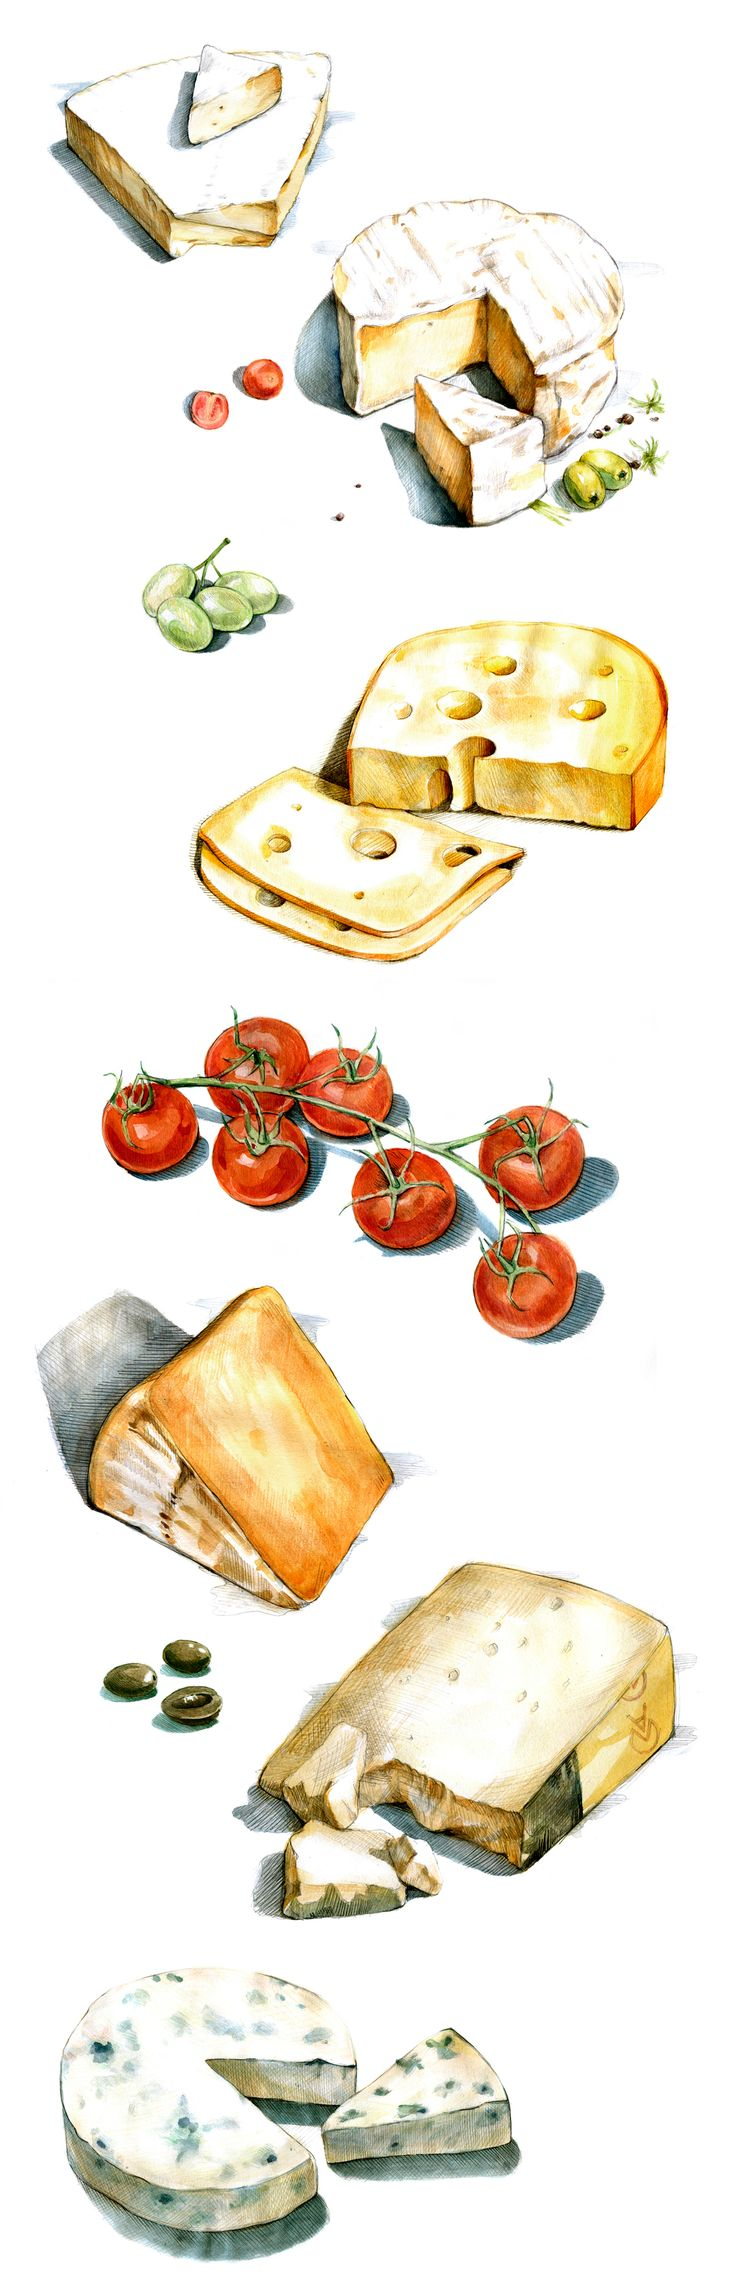 Food illustrations made for supermarket